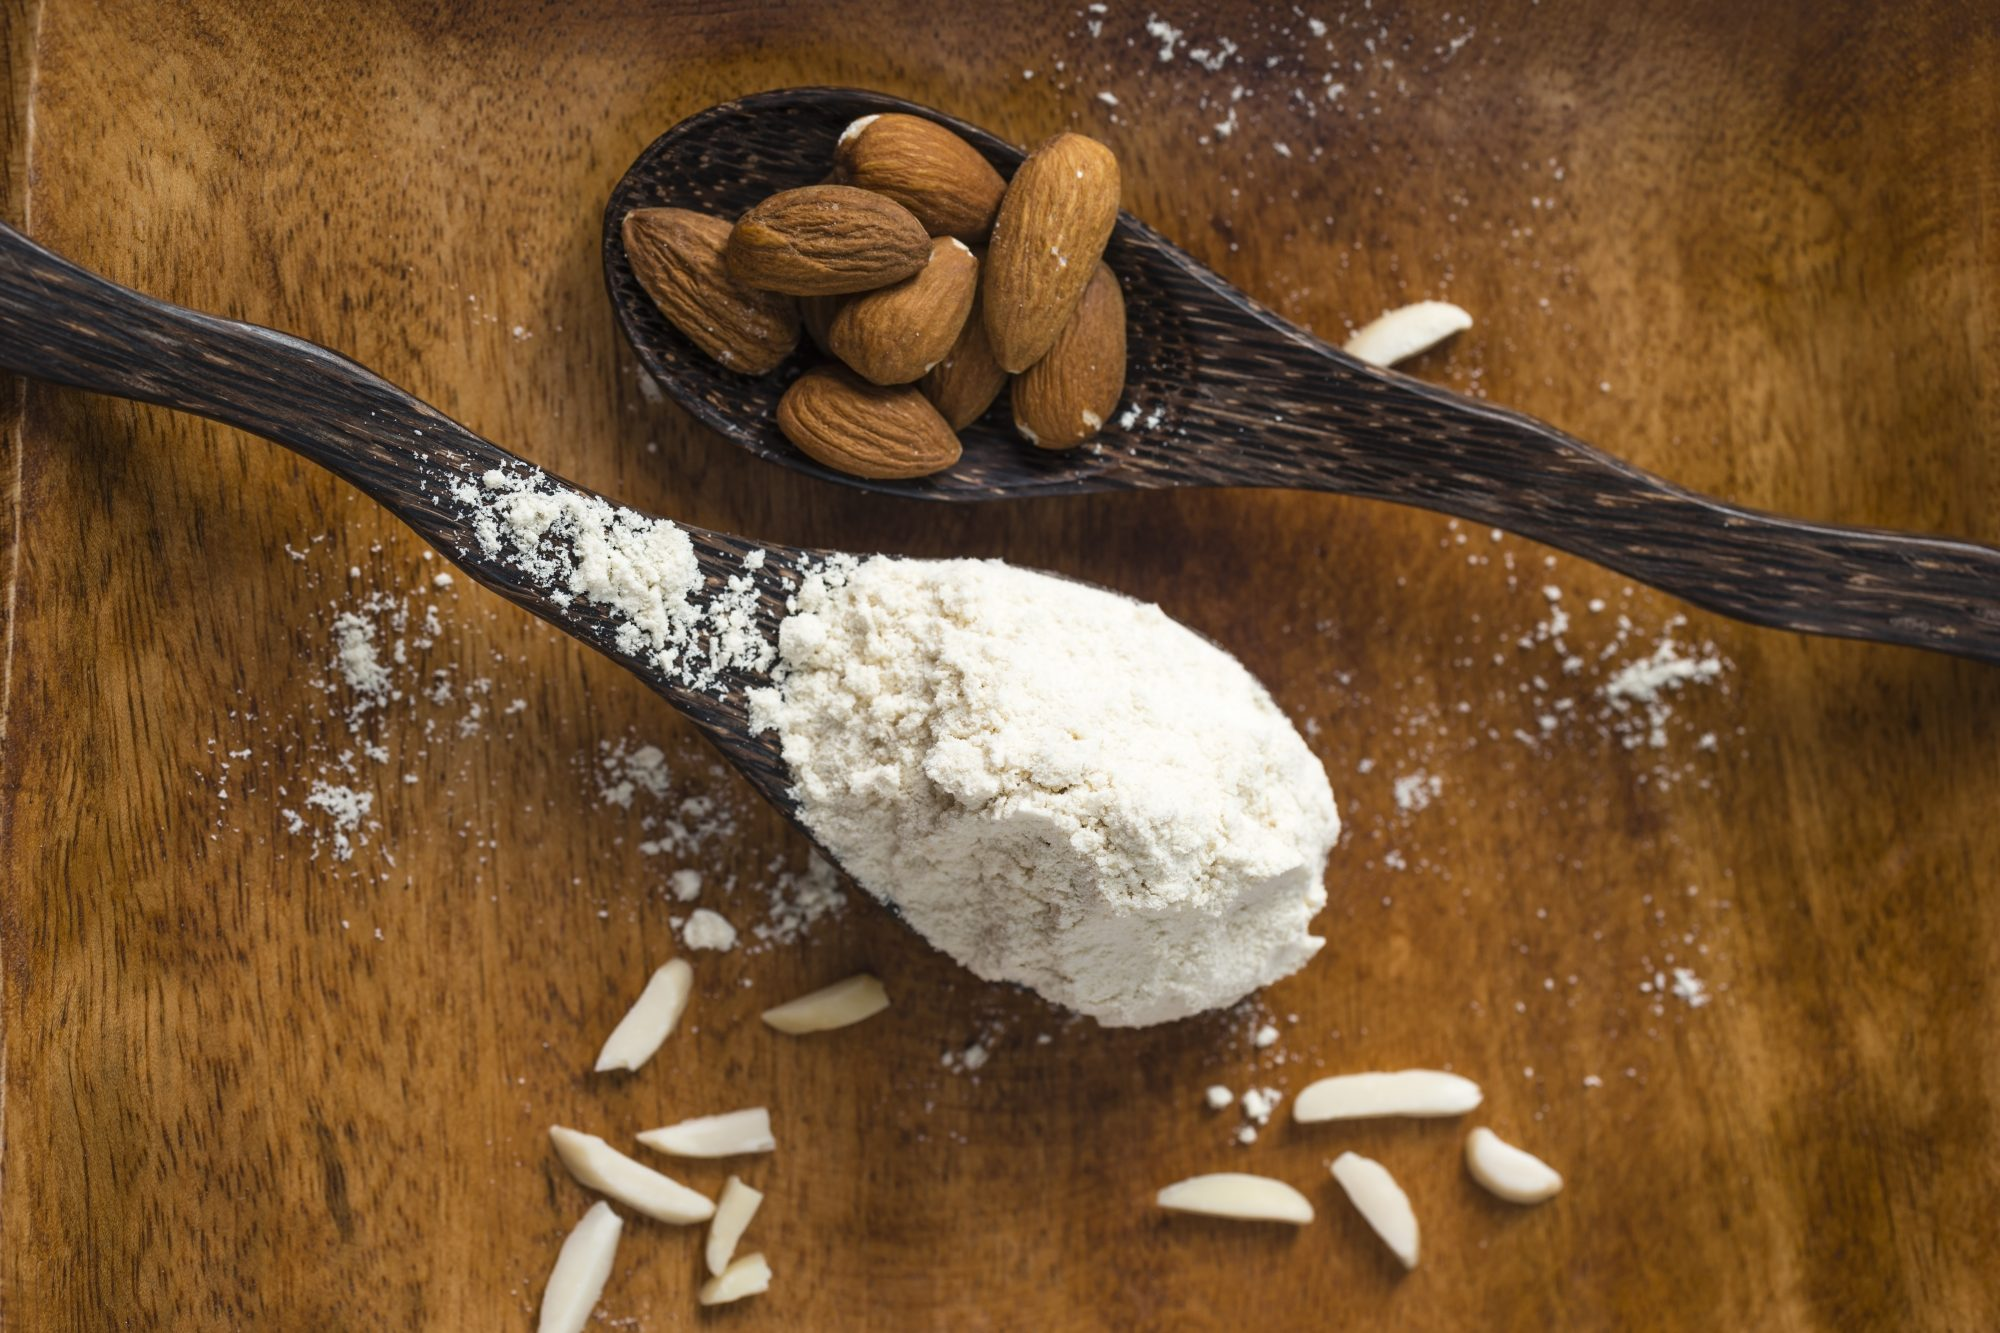 Gluten-Free Baking: 6 Flours to Try